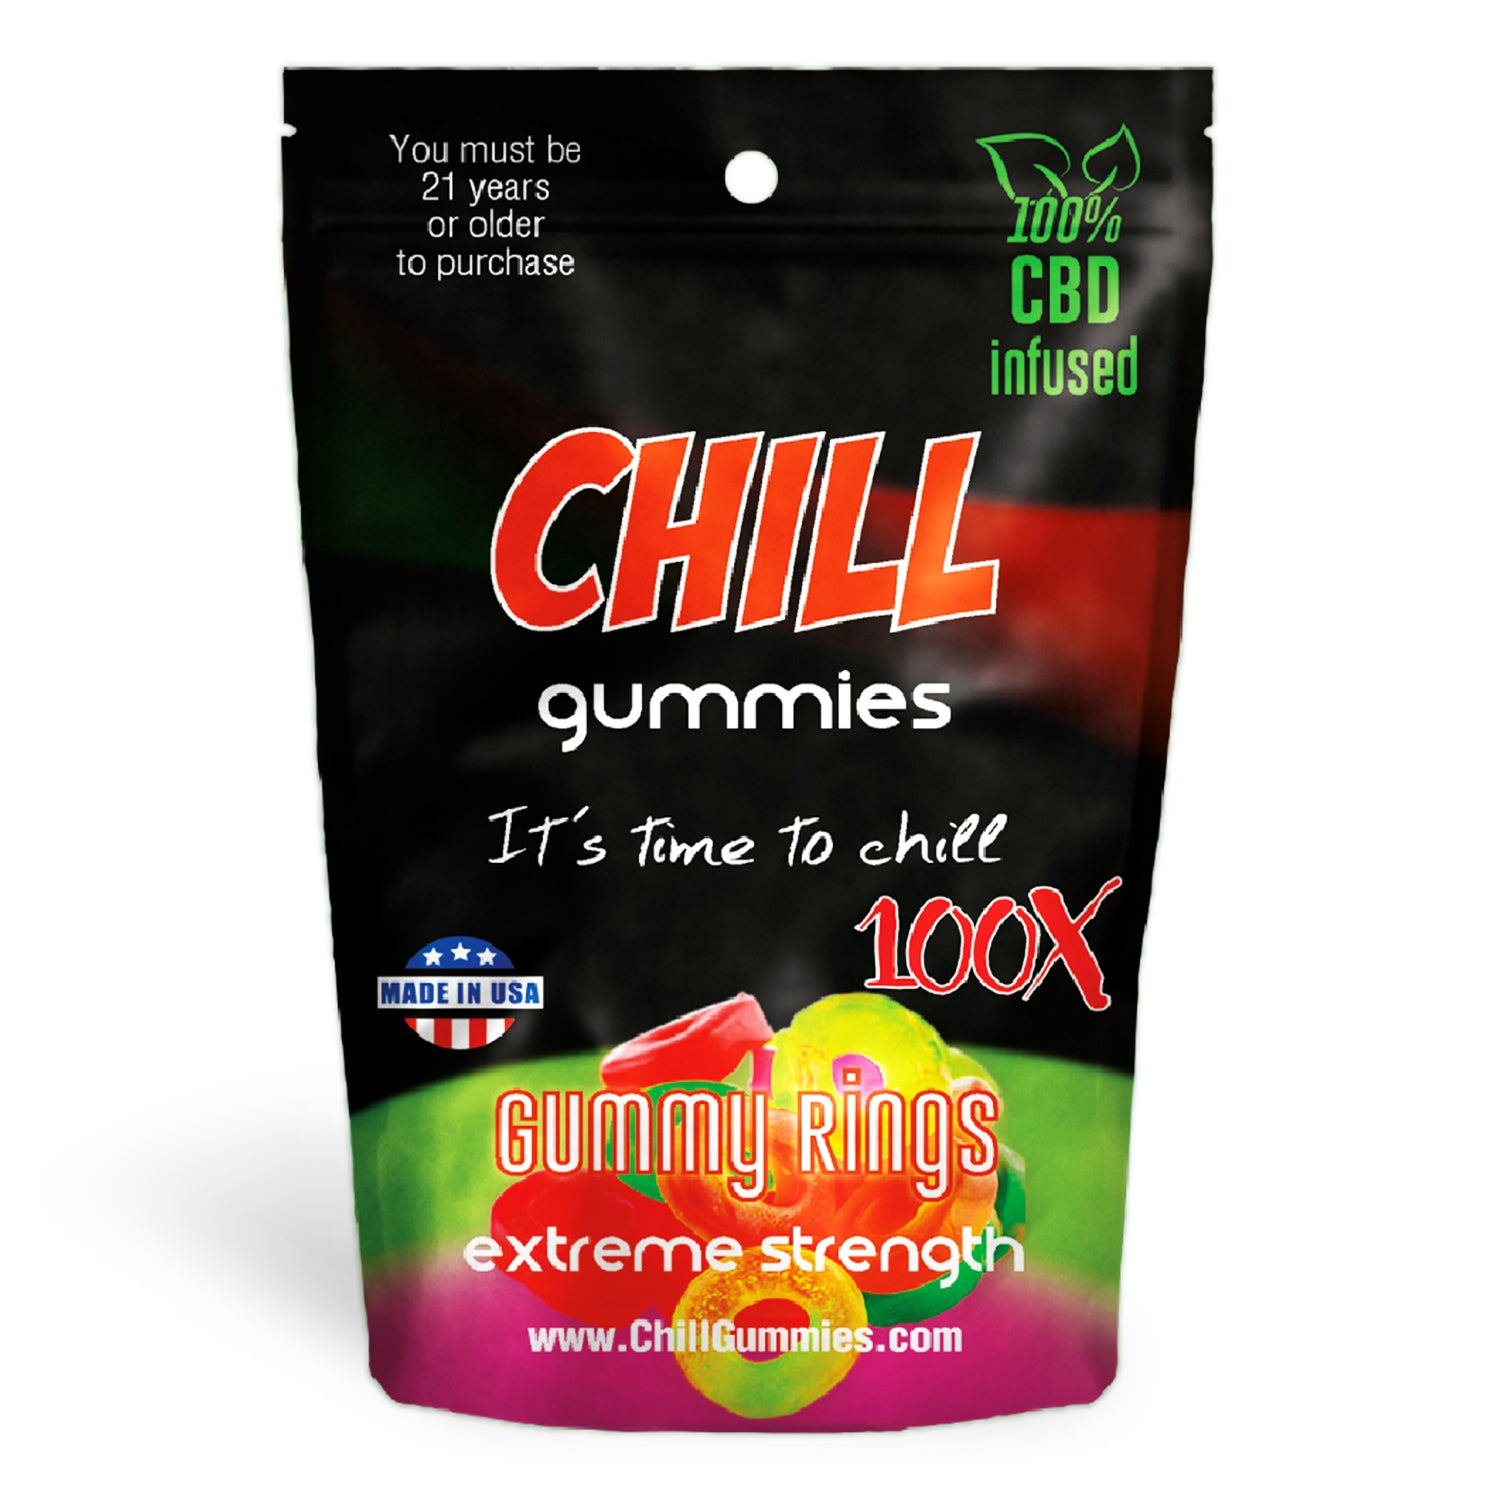 Chill Gummies - CBD Infused Gummy Rings [Edible Candy]